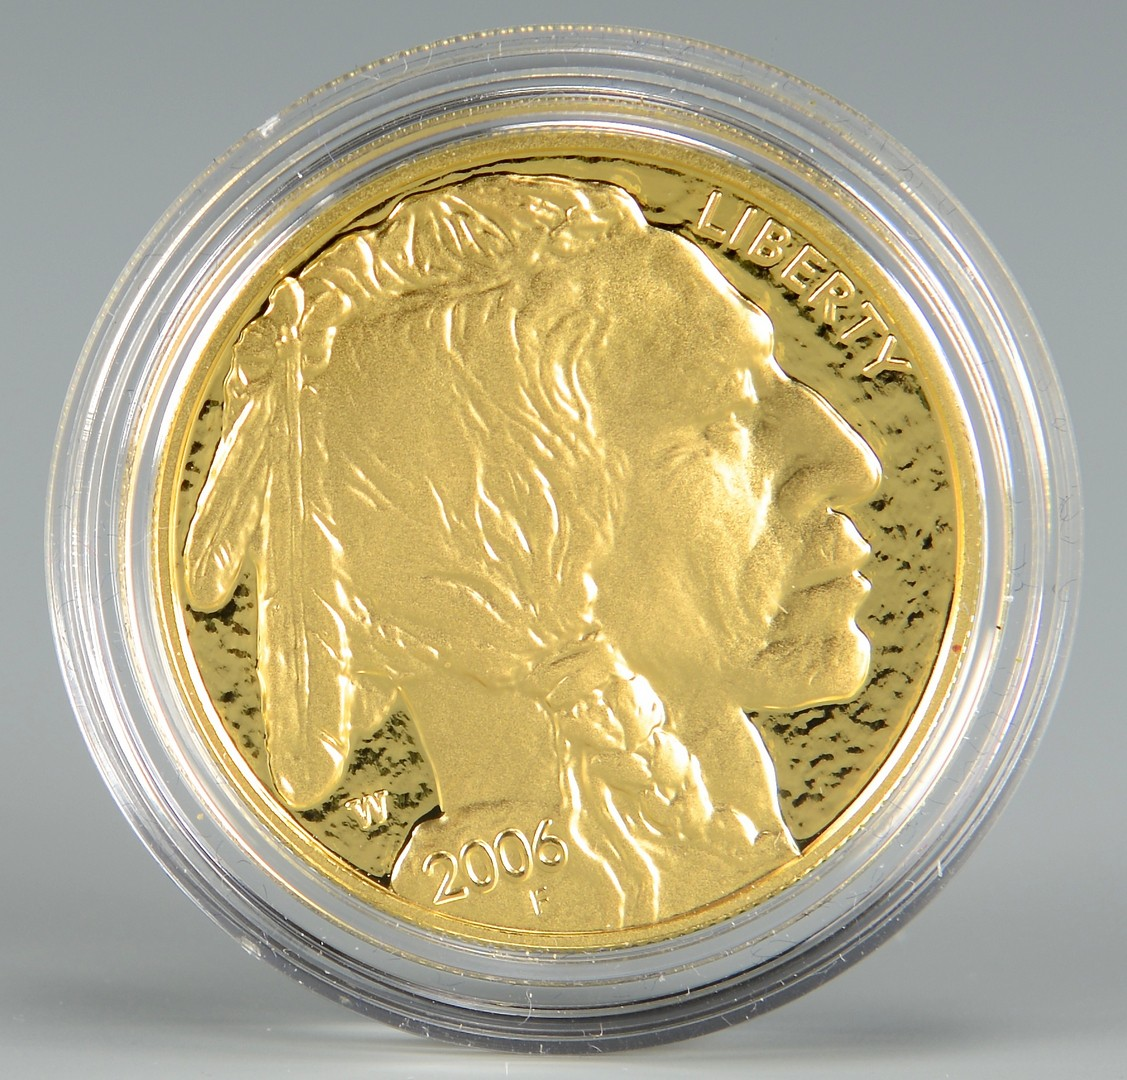 Lot 861: American Buffalo One Ounce Gold Proof Coin